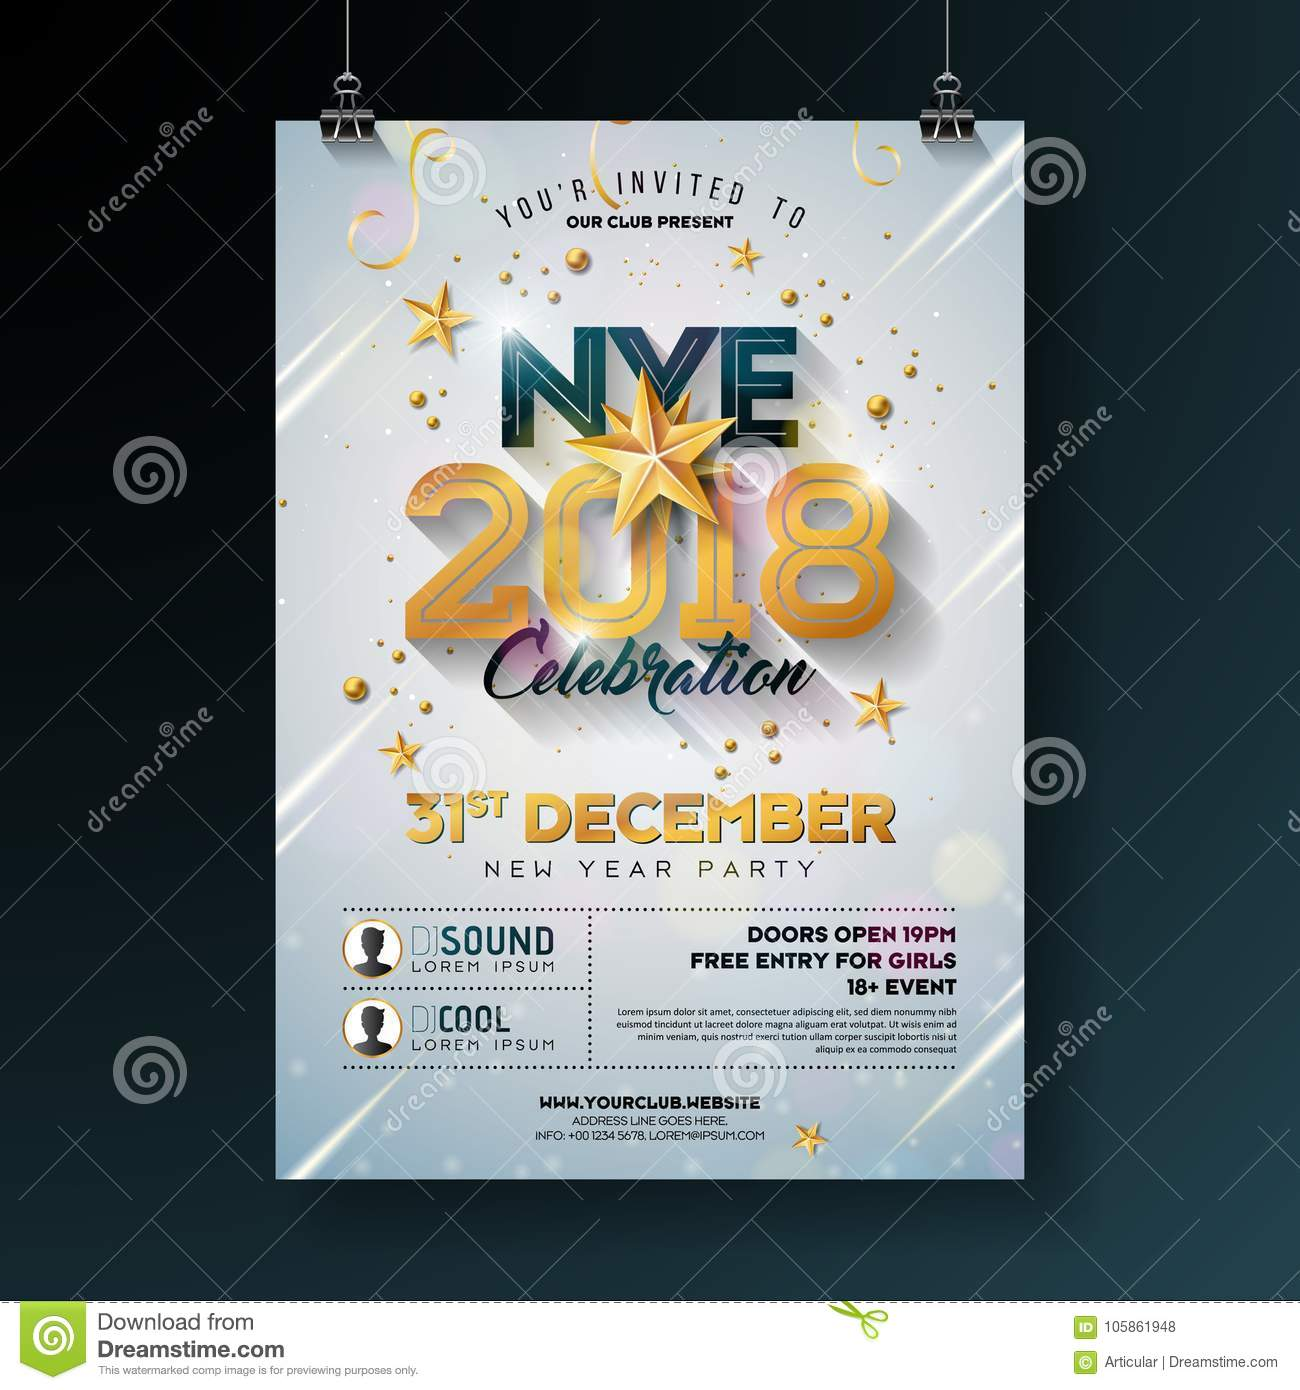 2018 new year party celebration poster template illustration with shiny gold number on white background